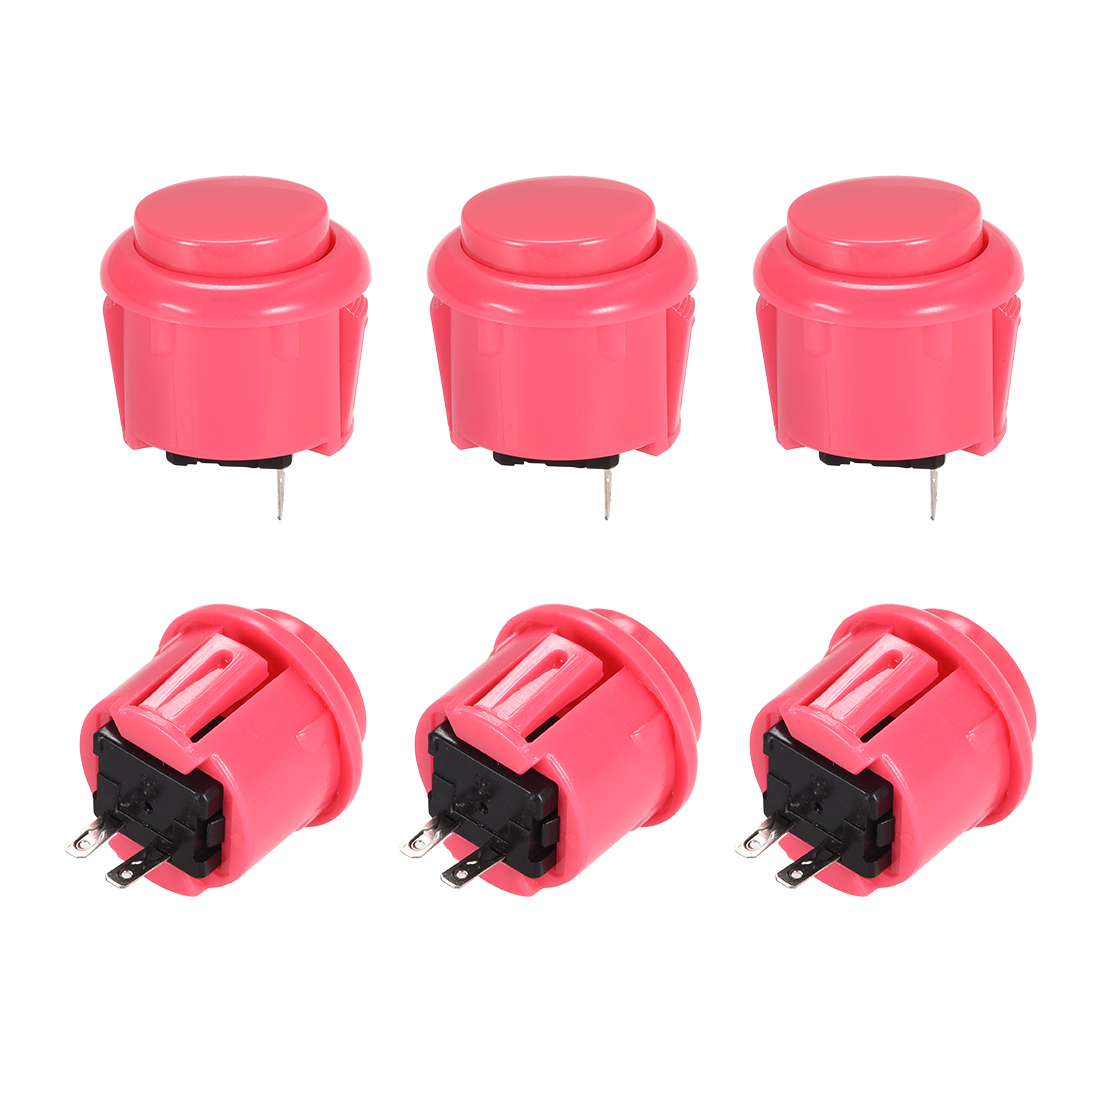 23mm Momentary Game Push Button Switch for Arcade Video Games Pink 6pcs